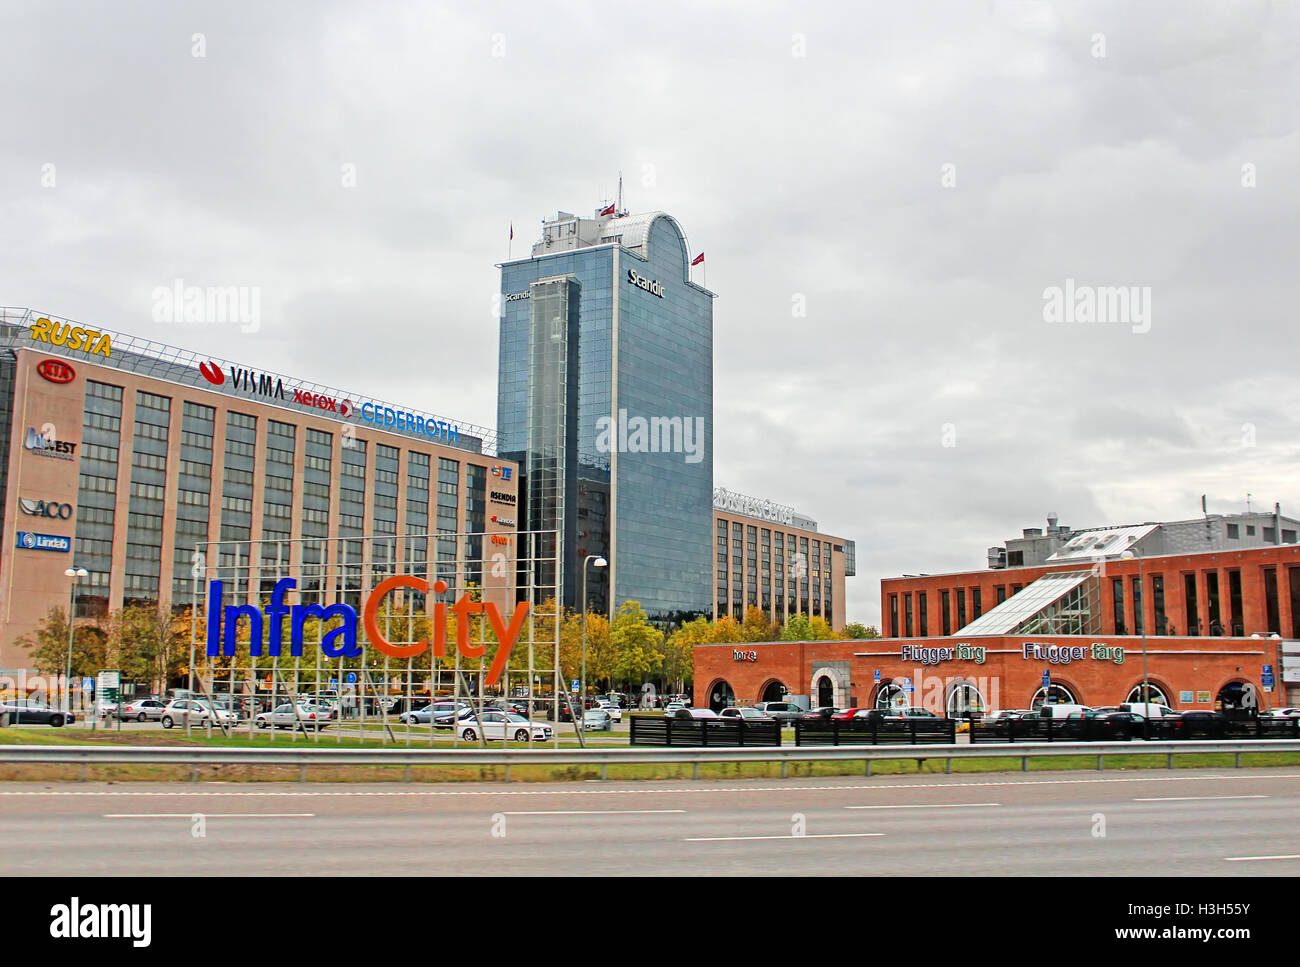 STOCKHOLM, SWEDEN - OCTOBER 17, 2013: InfraCity is a well-developed retail area in Stockholm - Stock Image